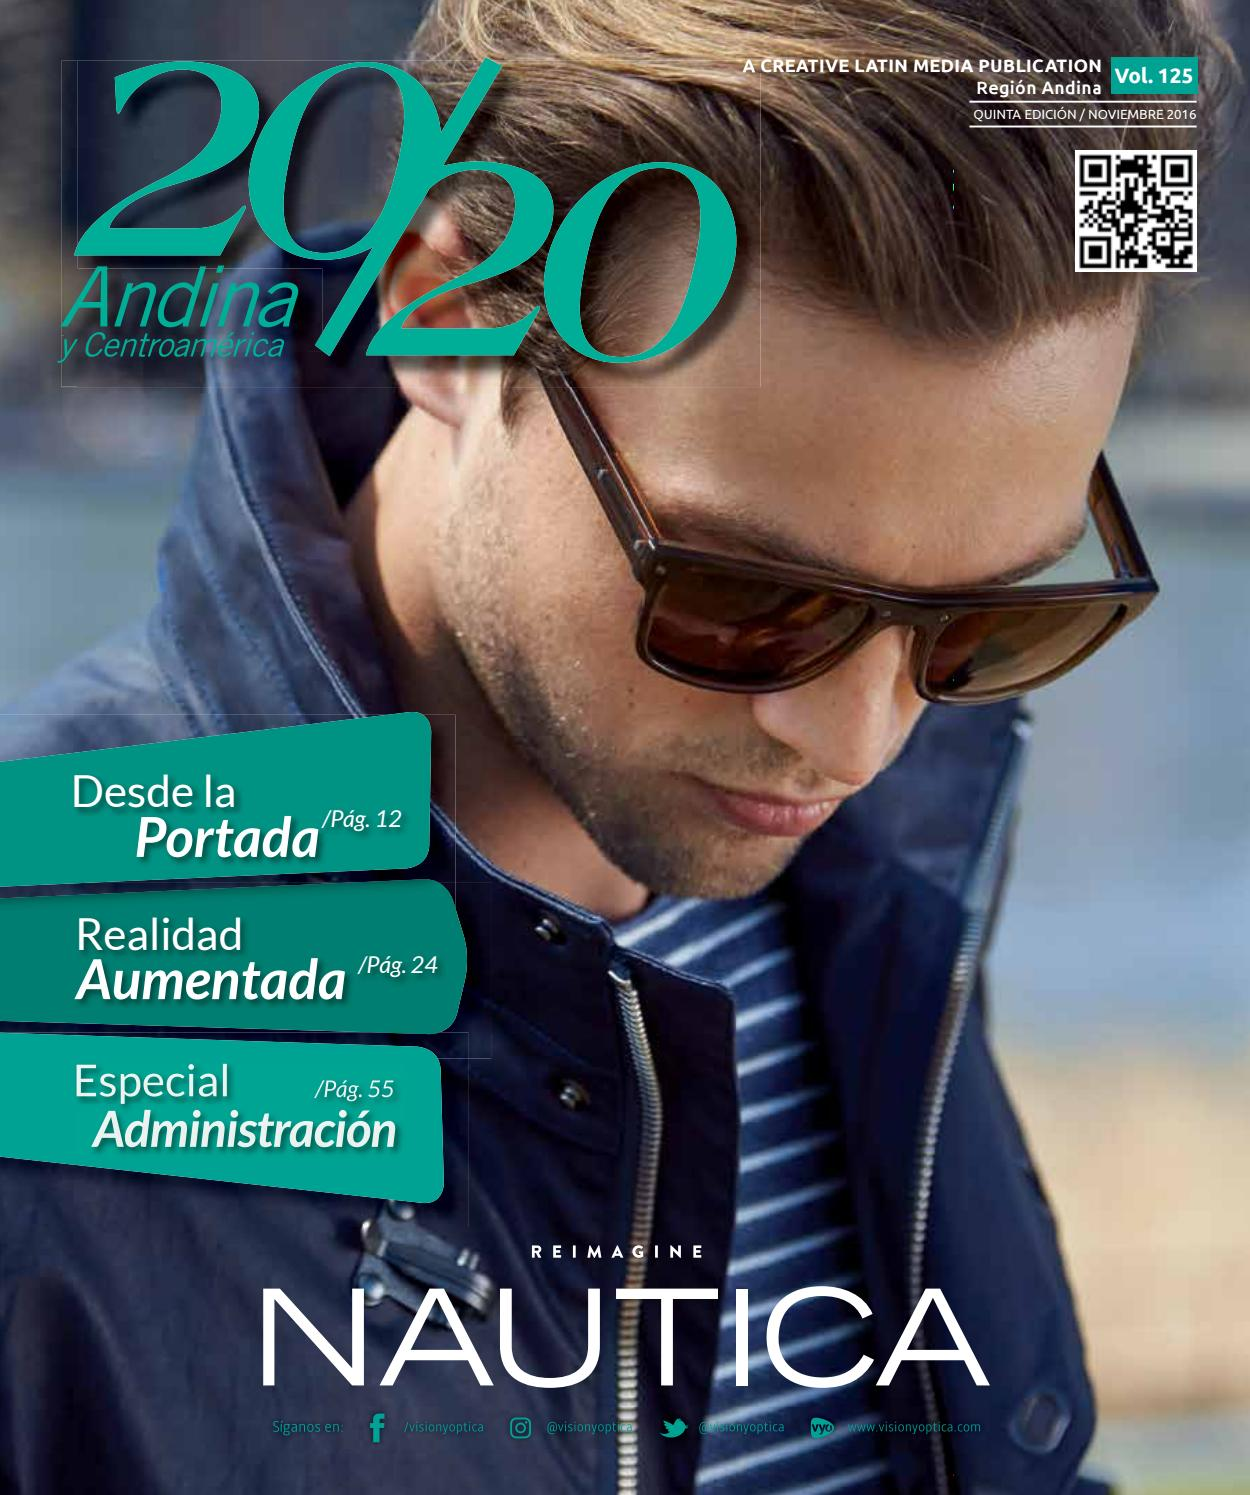 d0789daef8 2020 5ta 2016 and baja total by Creative Latin Media LLC - issuu